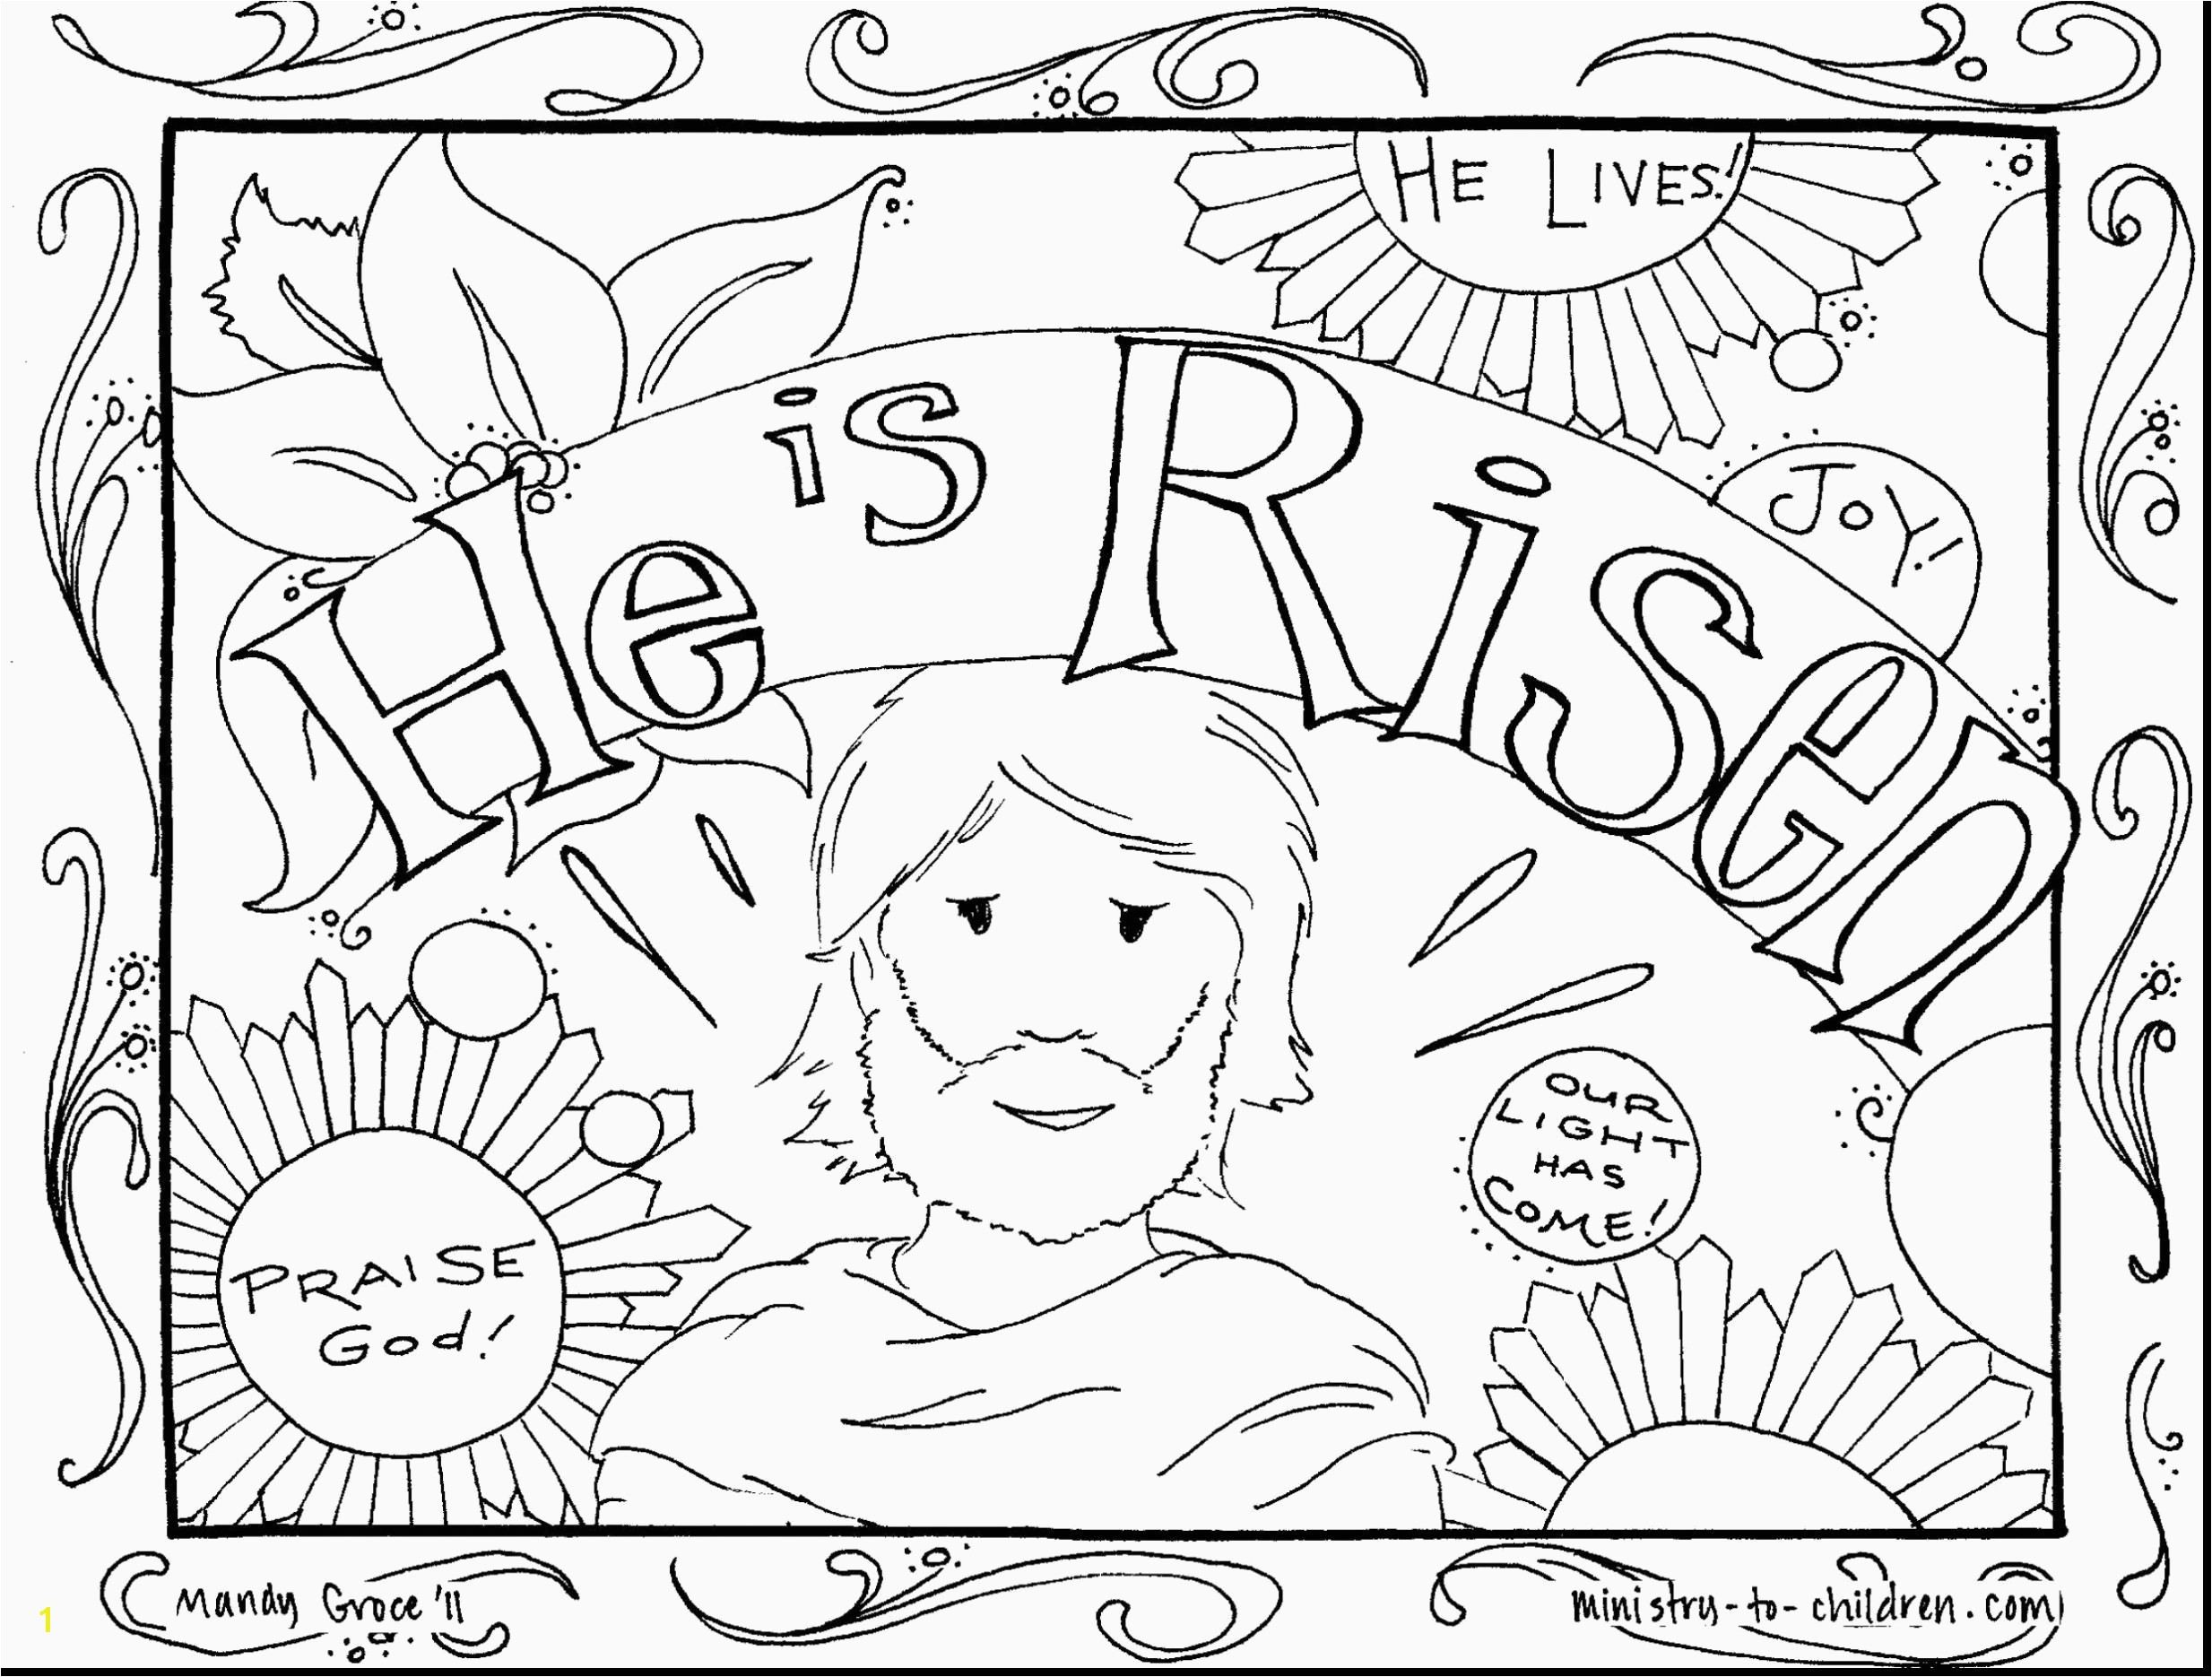 Jesus Loves Me Coloring Pages Printables Luxury Jesus Loves Me Coloring Pages Printables Elegant Easter Coloring